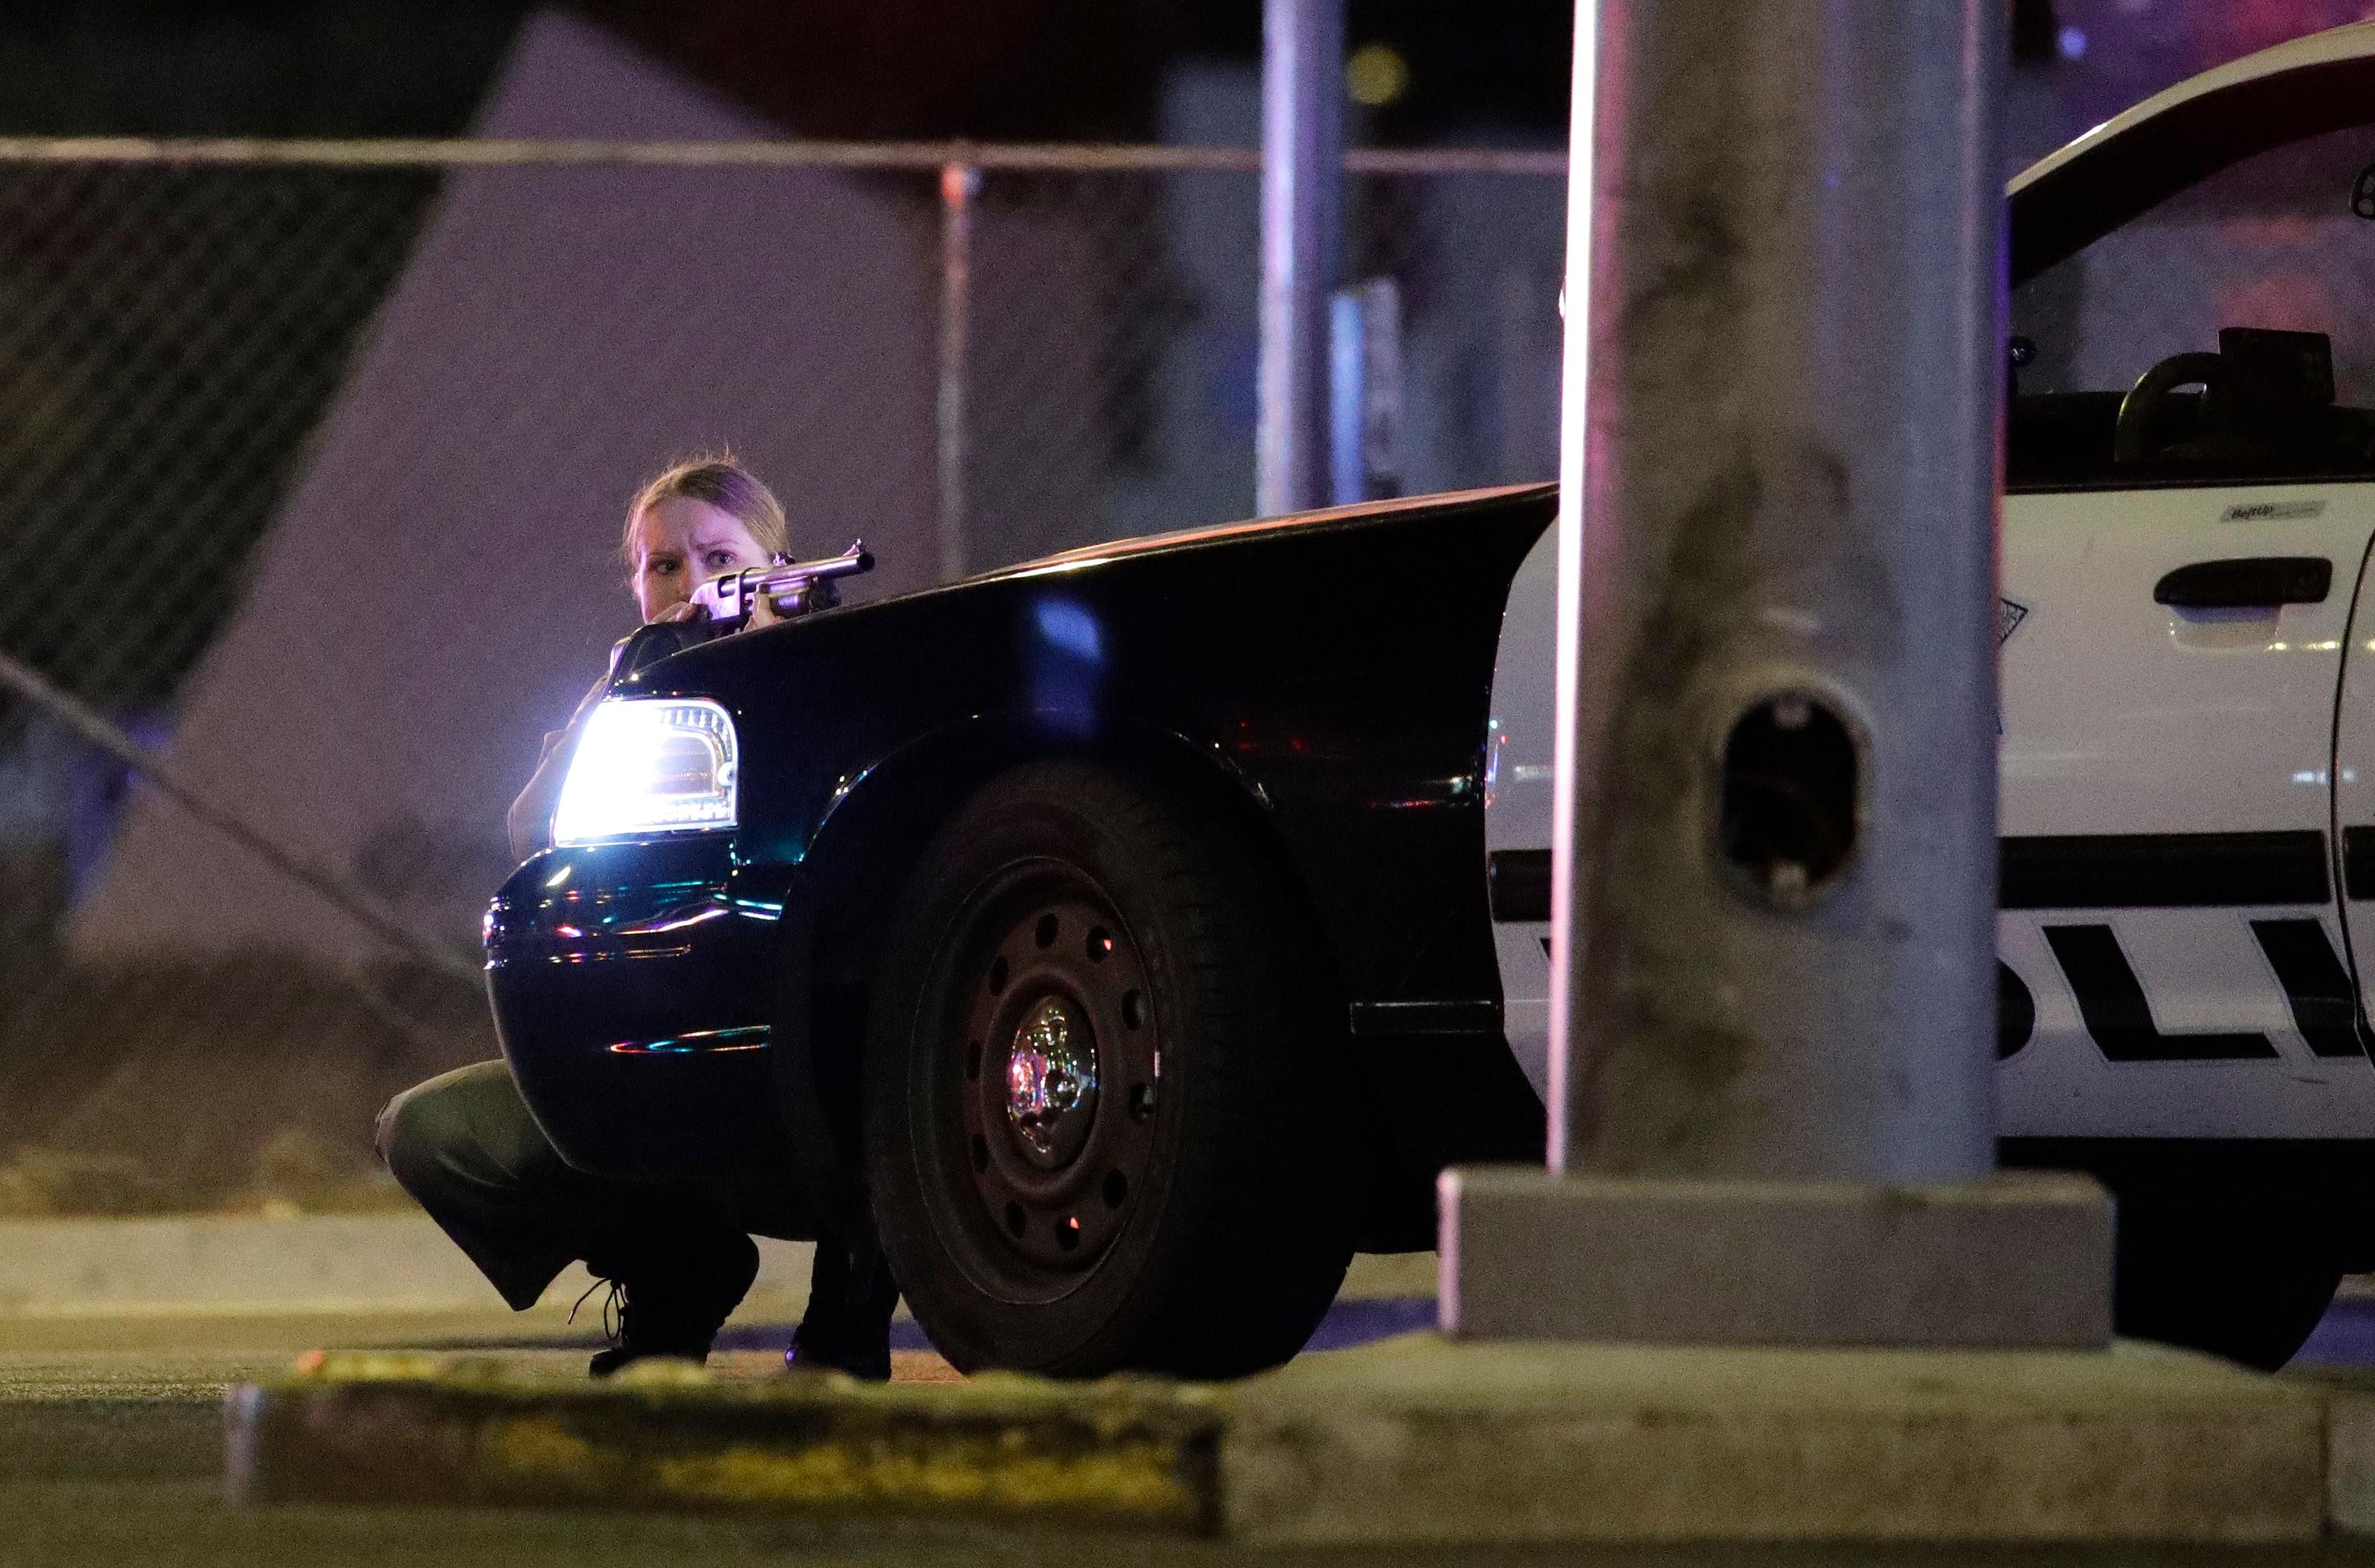 A police officer takes cover behind a police vehicle during a shooting near the Mandalay Bay resort and casino on the Las Vegas Strip, Sunday, Oct. 1, 2017, in Las Vegas. (AP PhotoJohn Locher).jpg